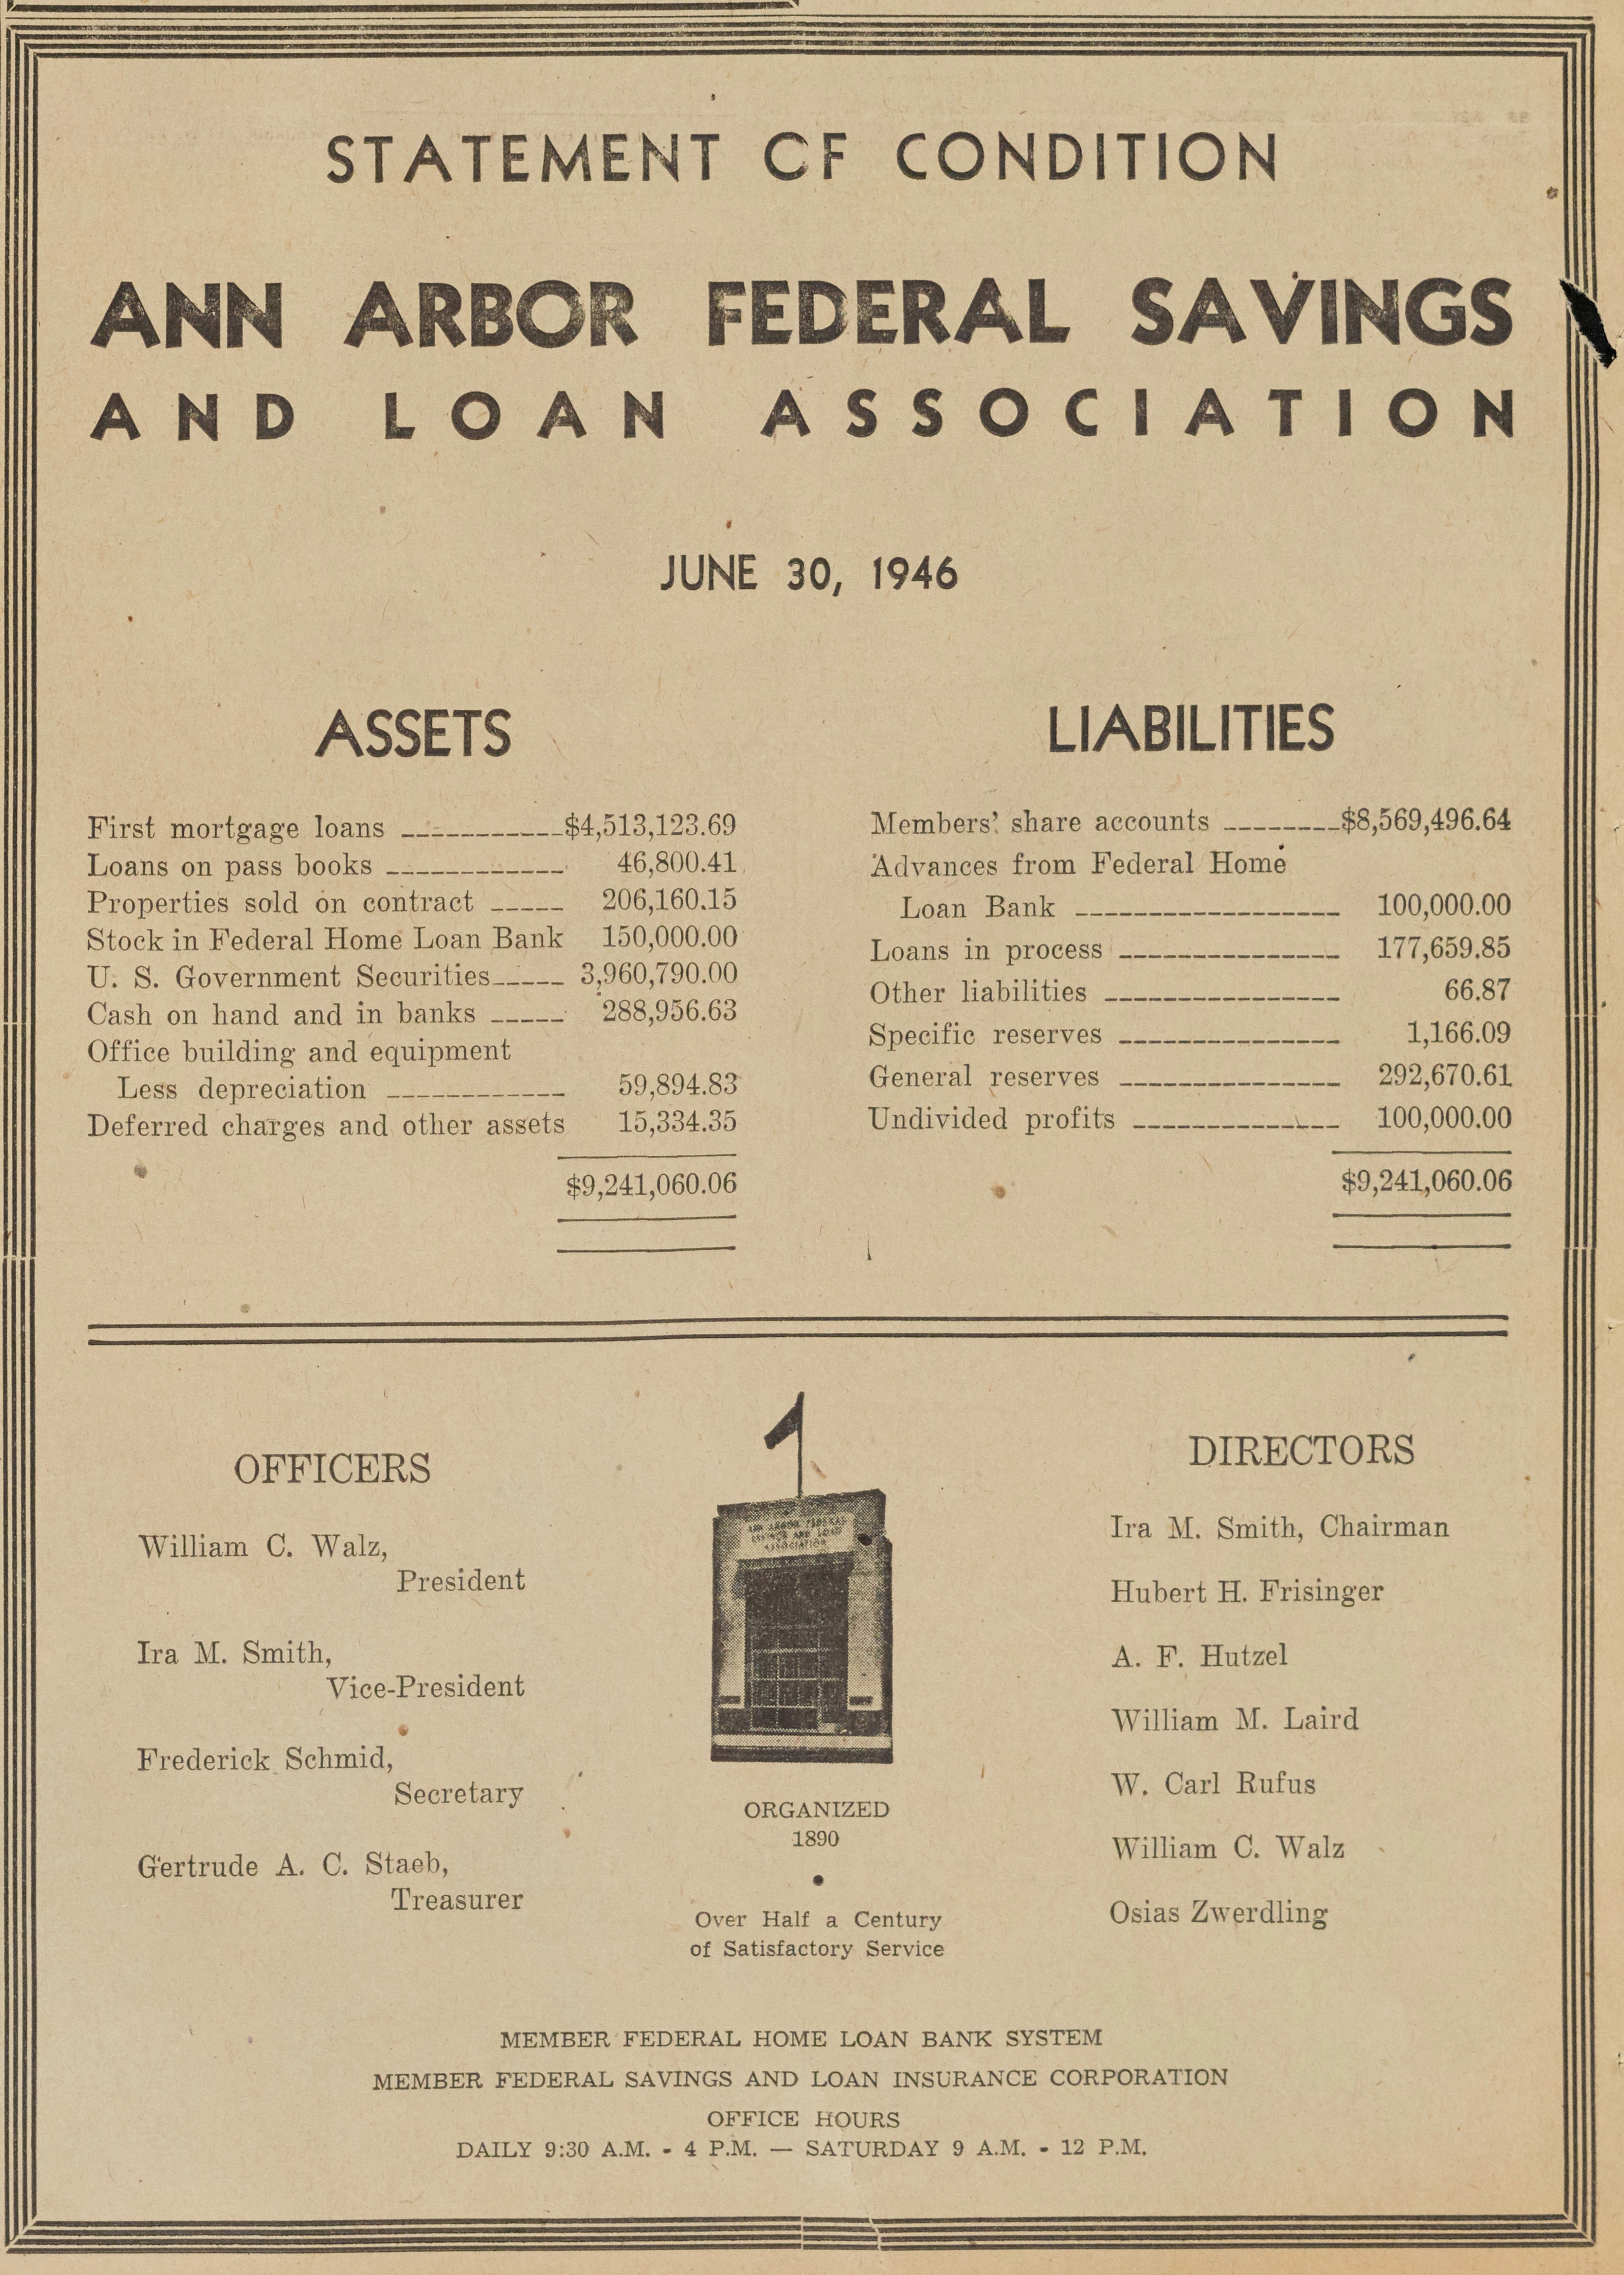 Ann Arbor Federal Savings And Loan Association image